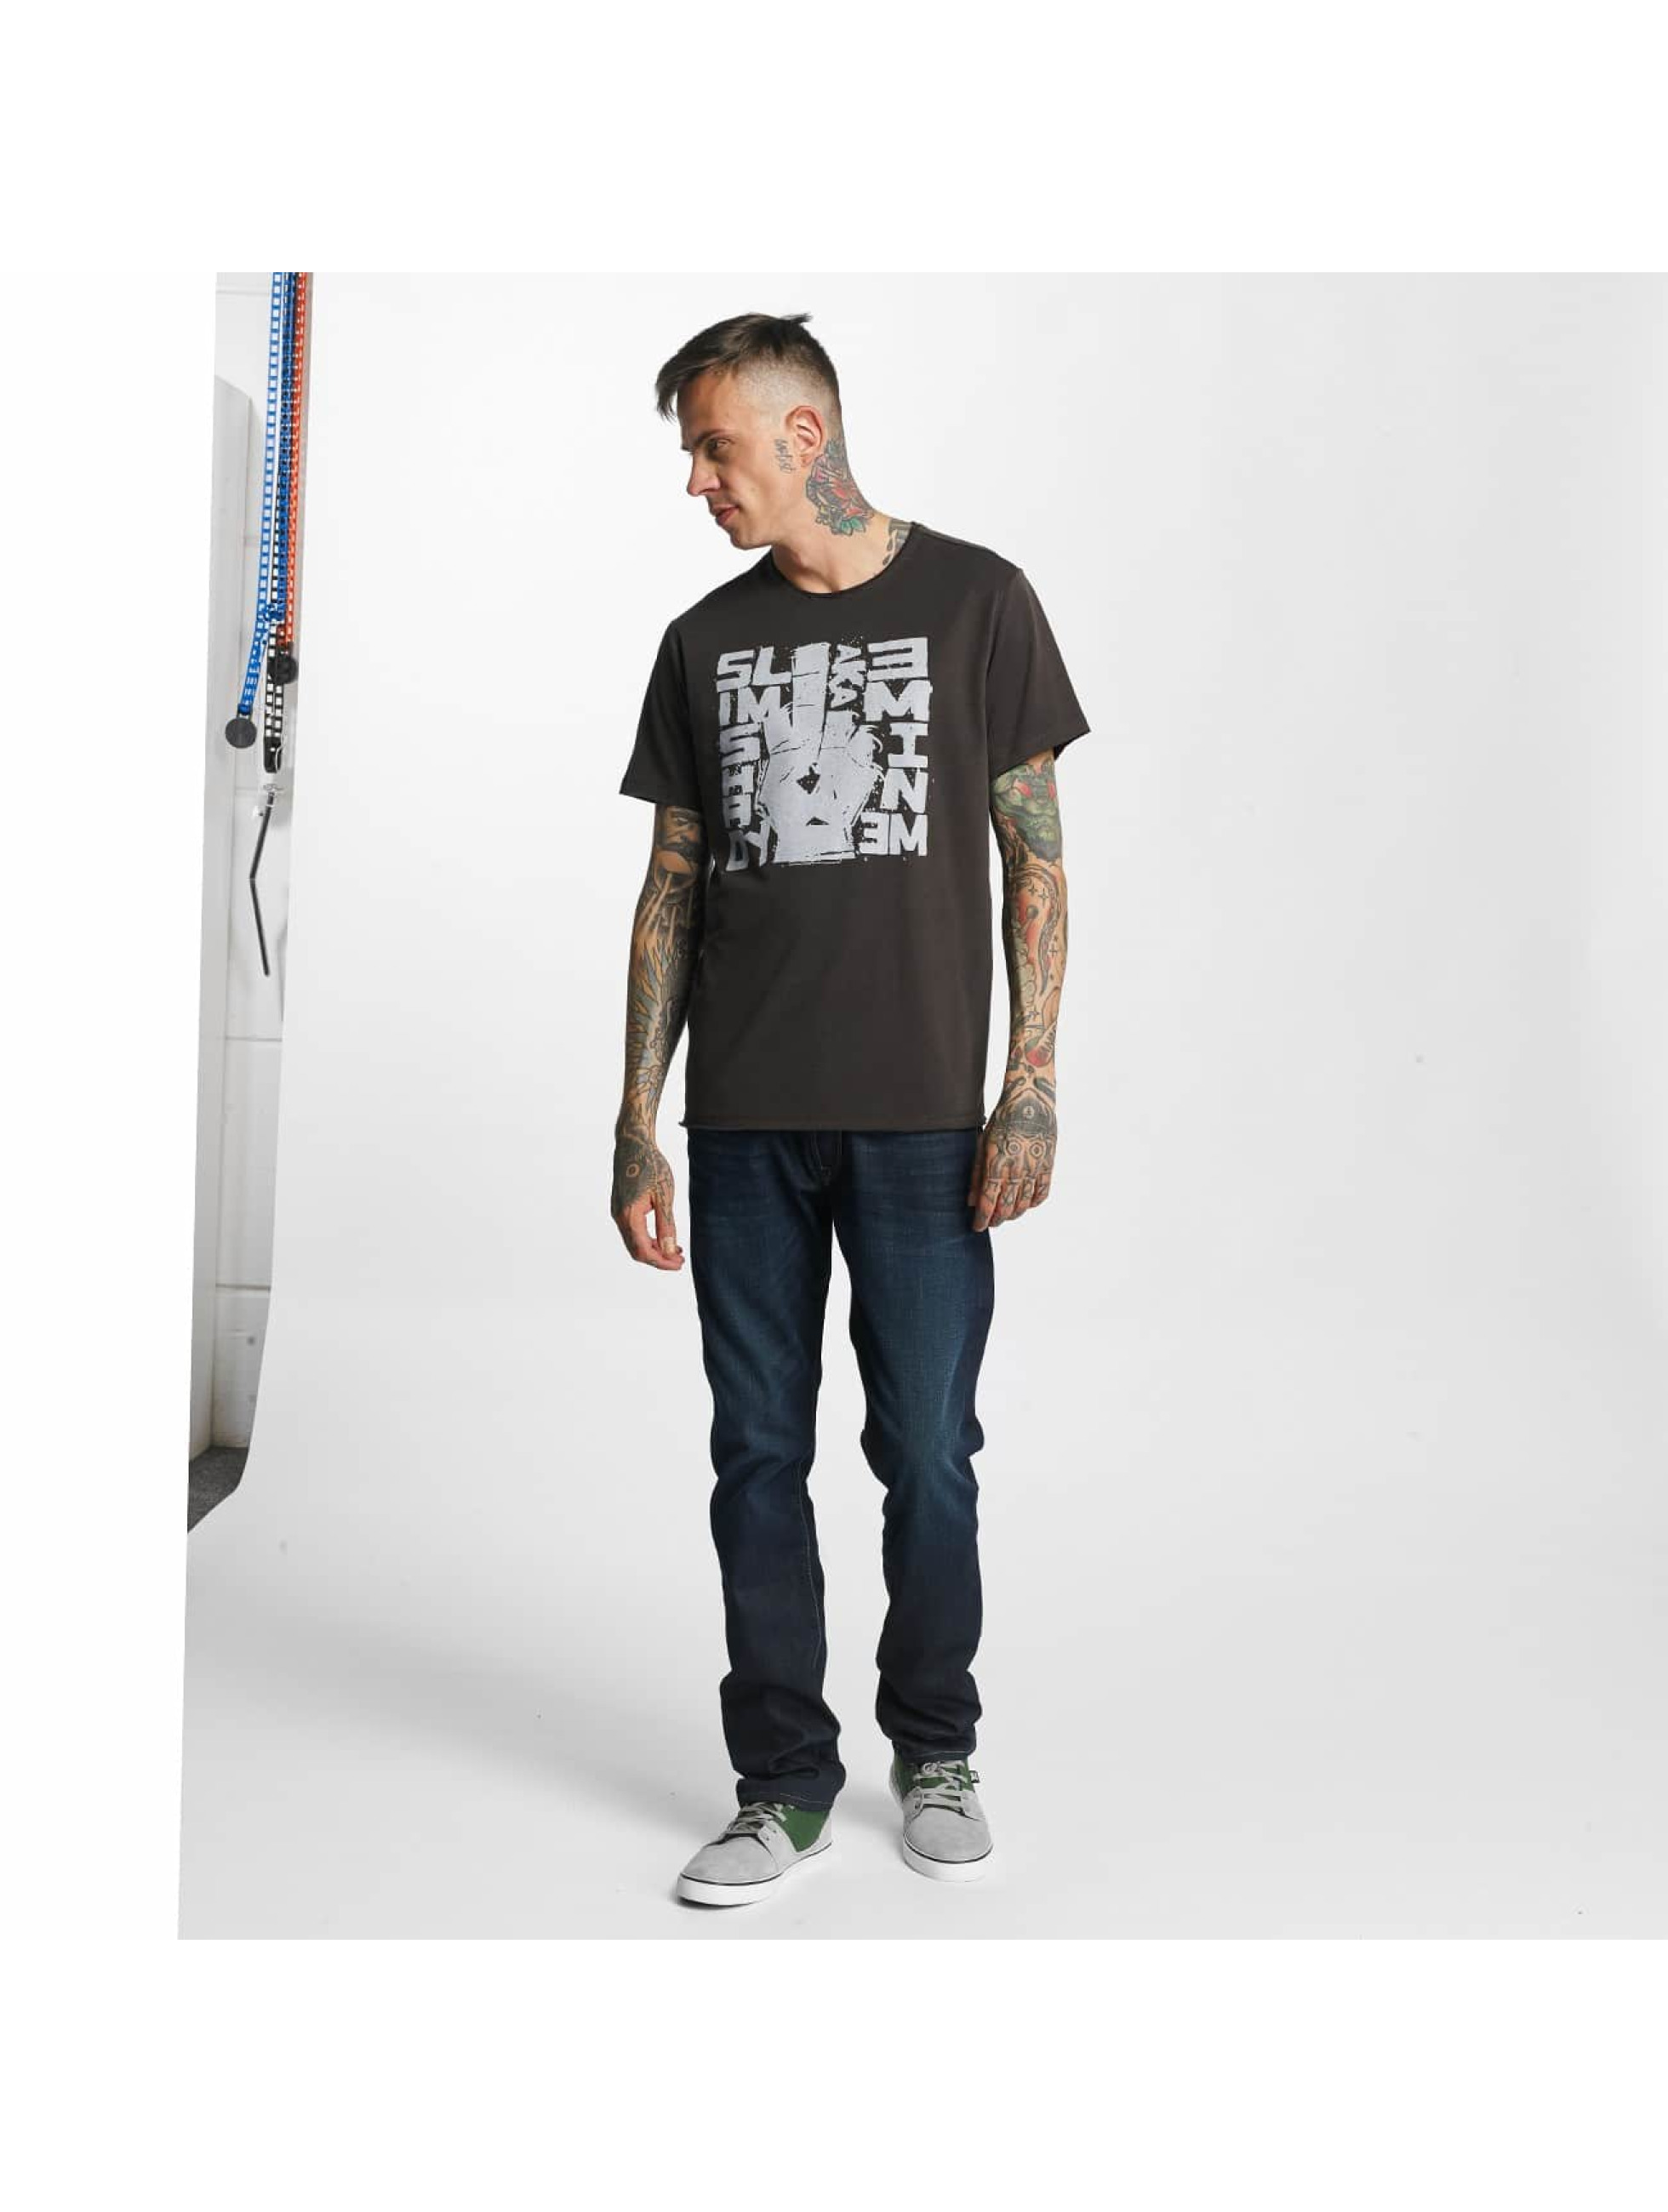 Amplified T-Shirt Eminem Slim Shady gray